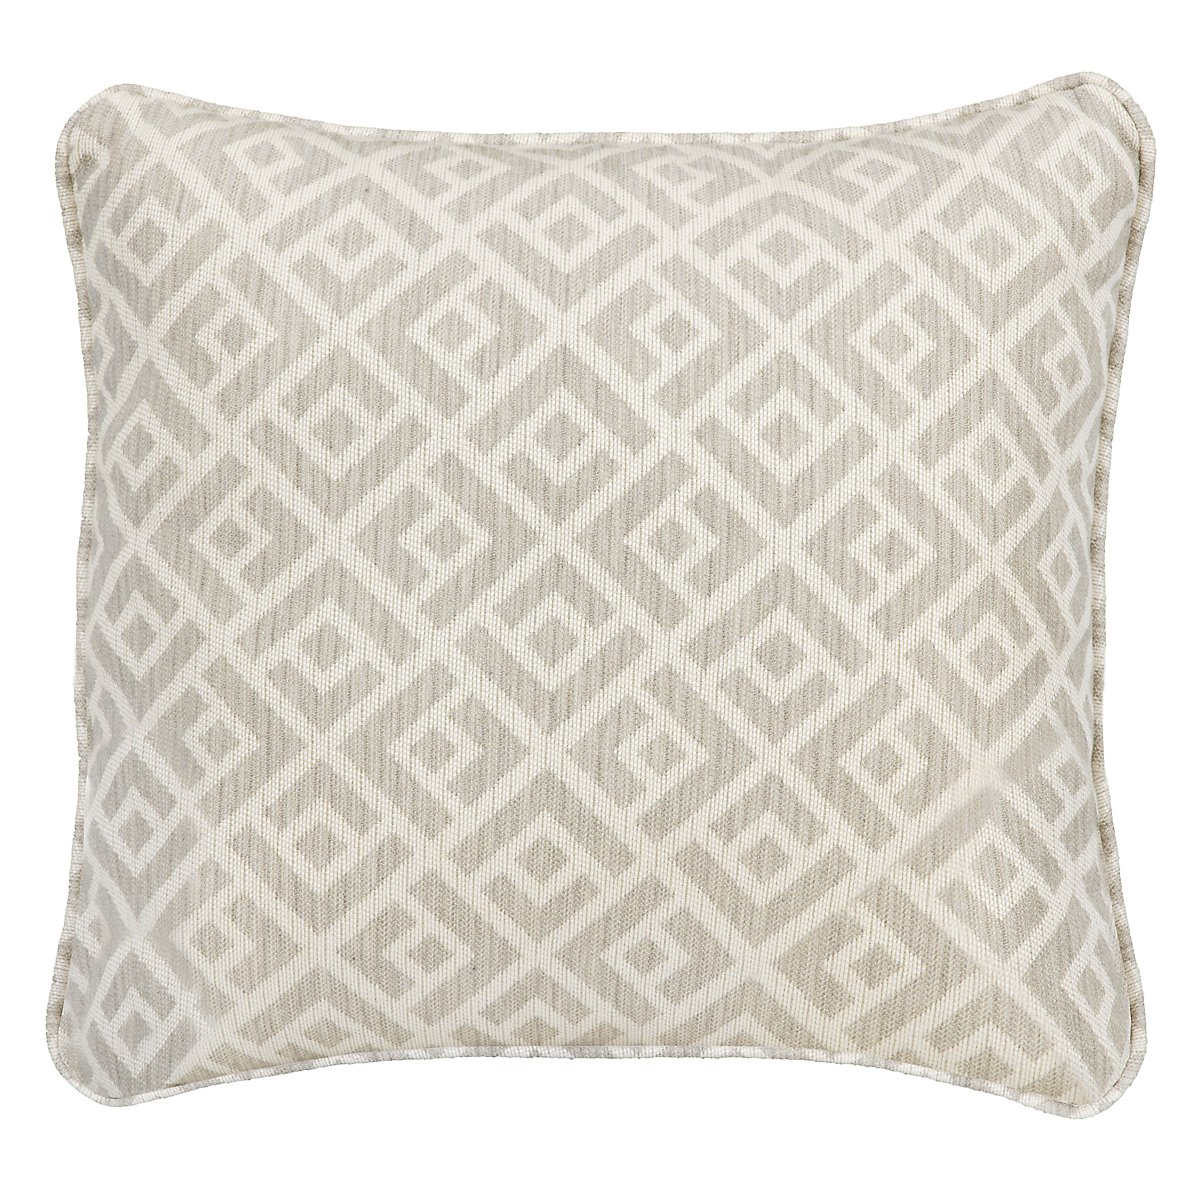 "Chipper Light Gray 18"" Indoor/Outdoor Accent Pillow"